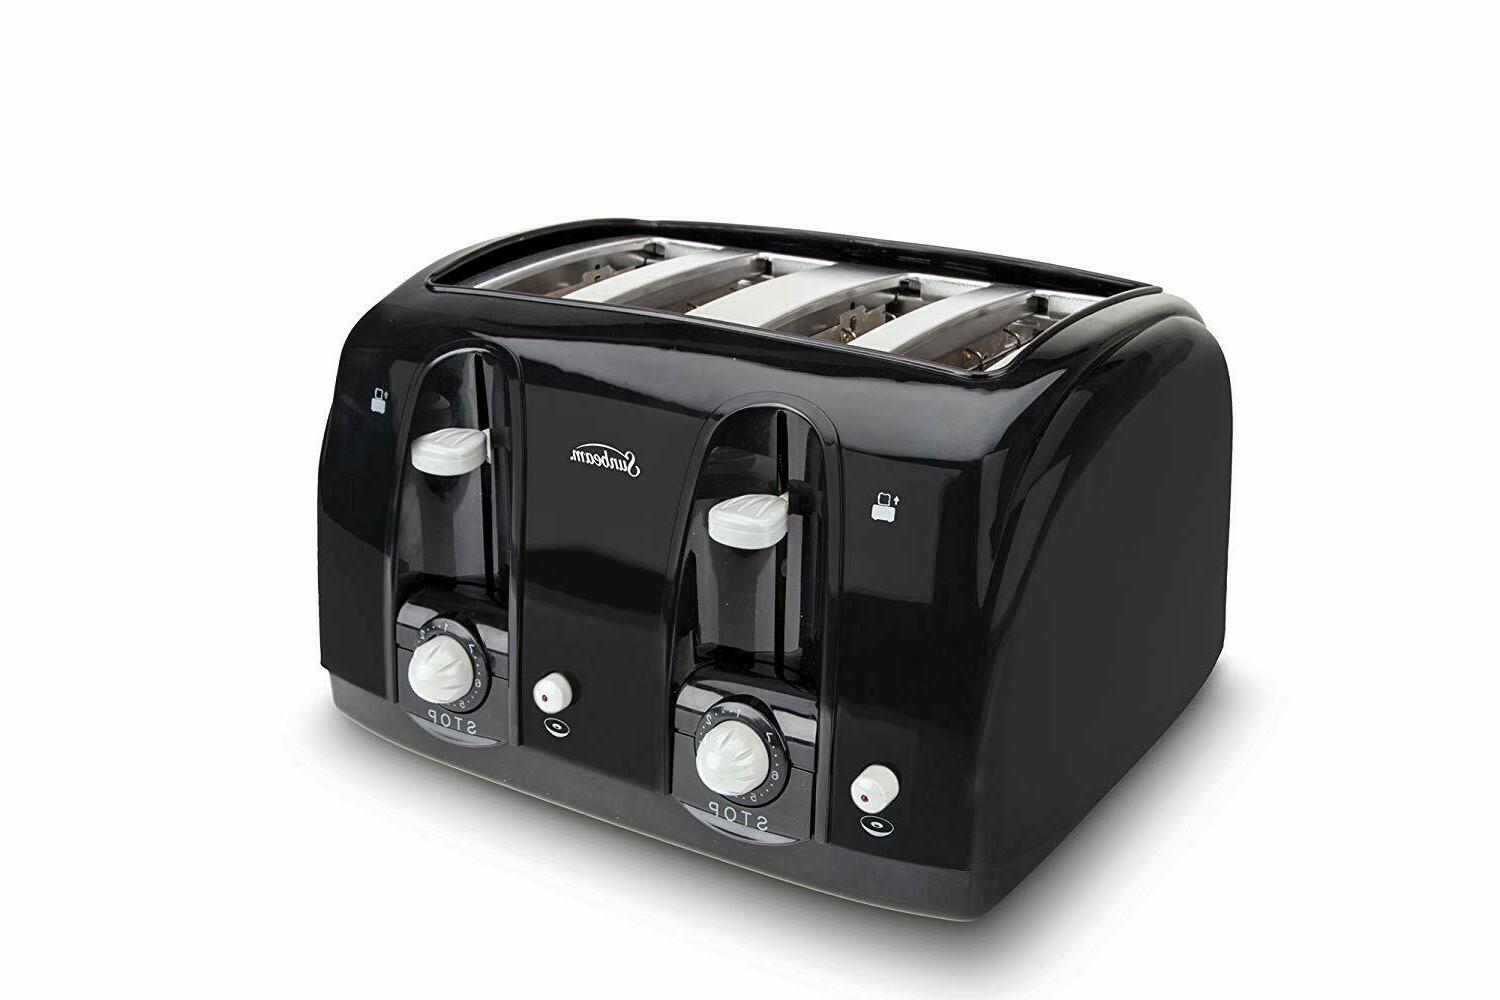 Extra Wide Slot Sleek modern 4 Slice Toaster Complement Any